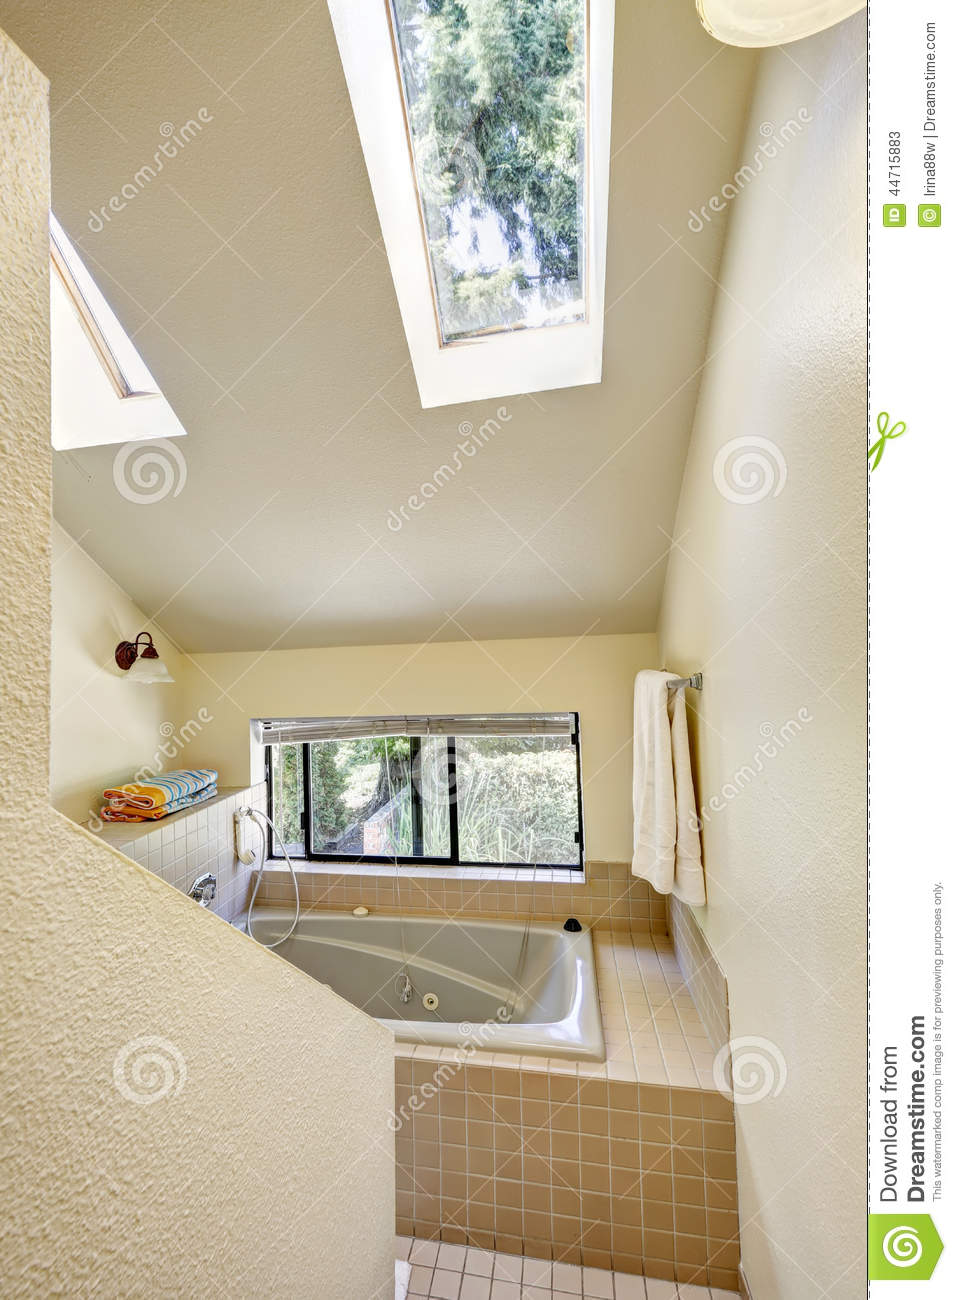 Bathroom With High Vaulted Ceiling And Skylight Stock Image